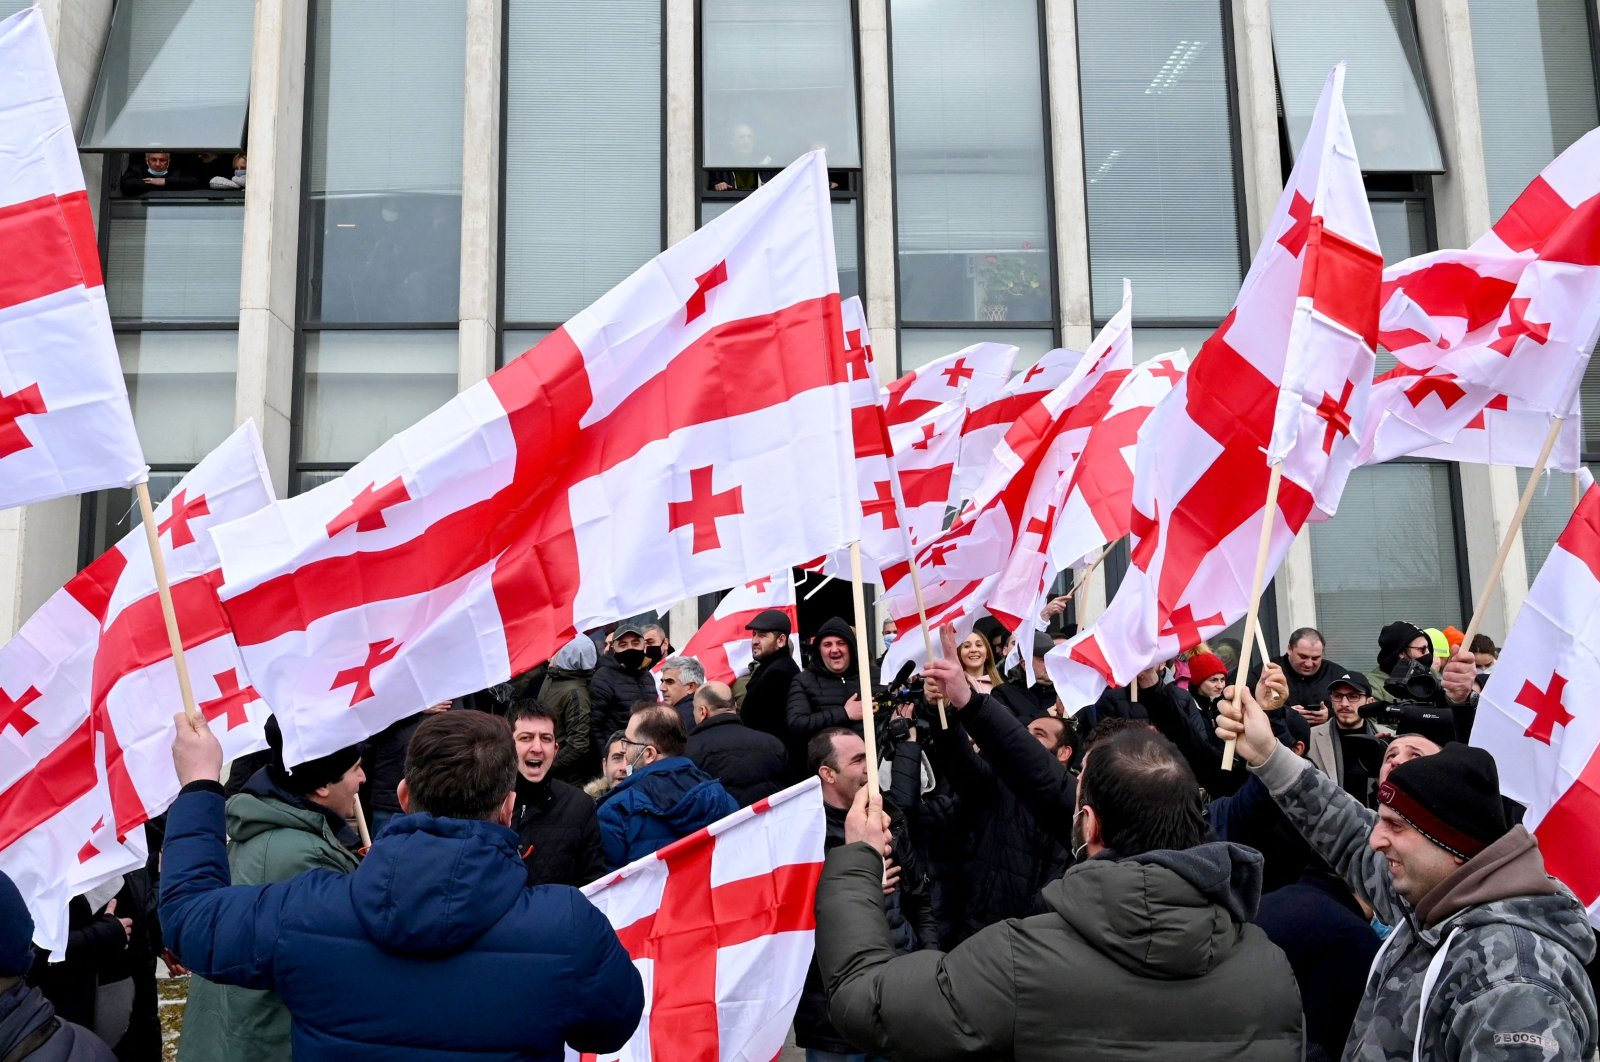 Georgian opposition supporters wave national flags while reacting to the announcement of Prime Minister Giorgi Gakharia's resignation in front of the United National Movement (UNM) headquarters in Tbilisi, Georgia, Feb. 18, 2021. (AFP Photo)